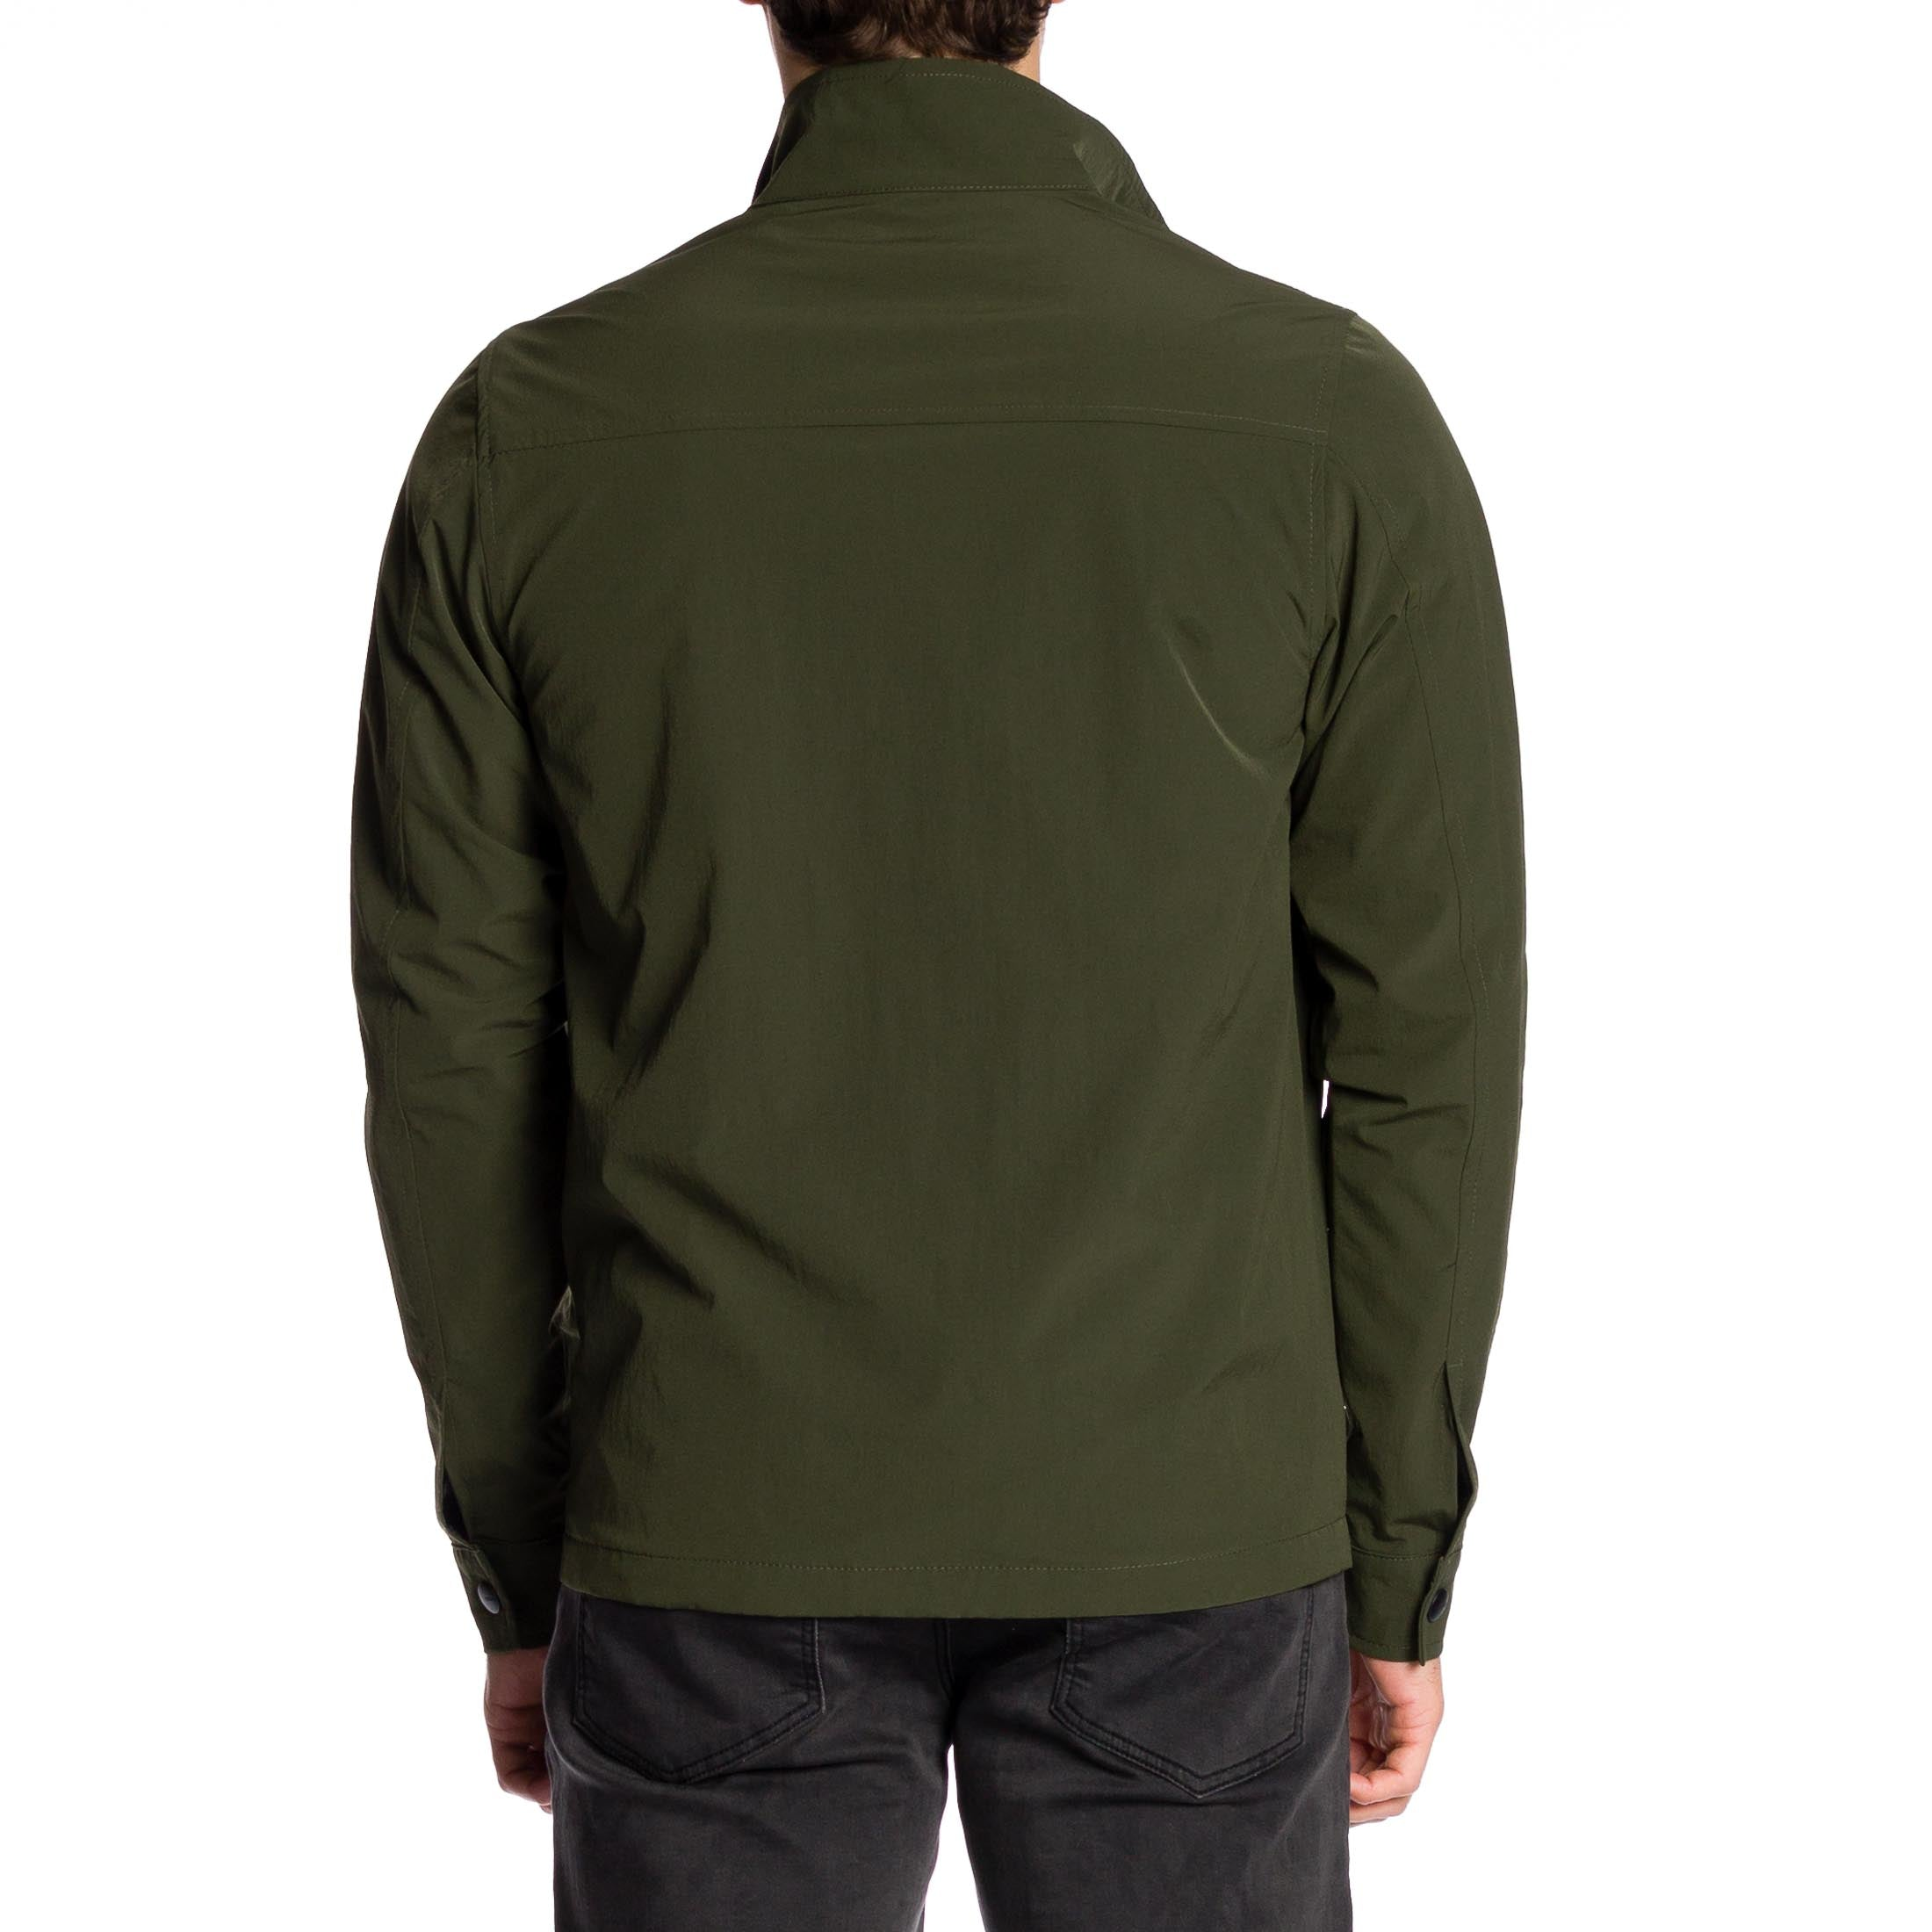 Suburban Jacket - Green - Ezekiel Clothing